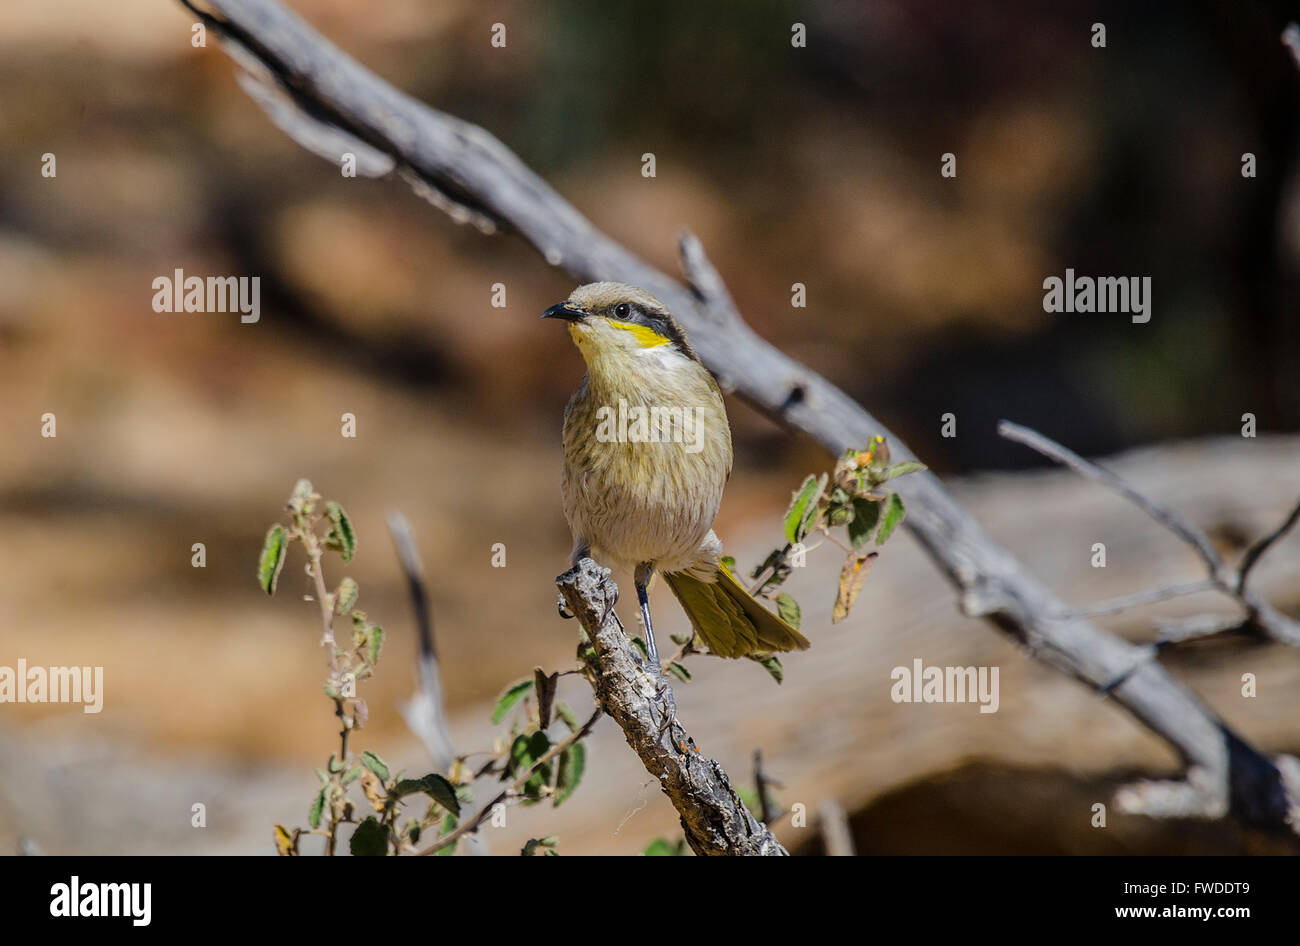 The singing honeyeater (Gavicalis virescens) is a small bird found in Australia, and is part of the honeyeater family - Stock Image